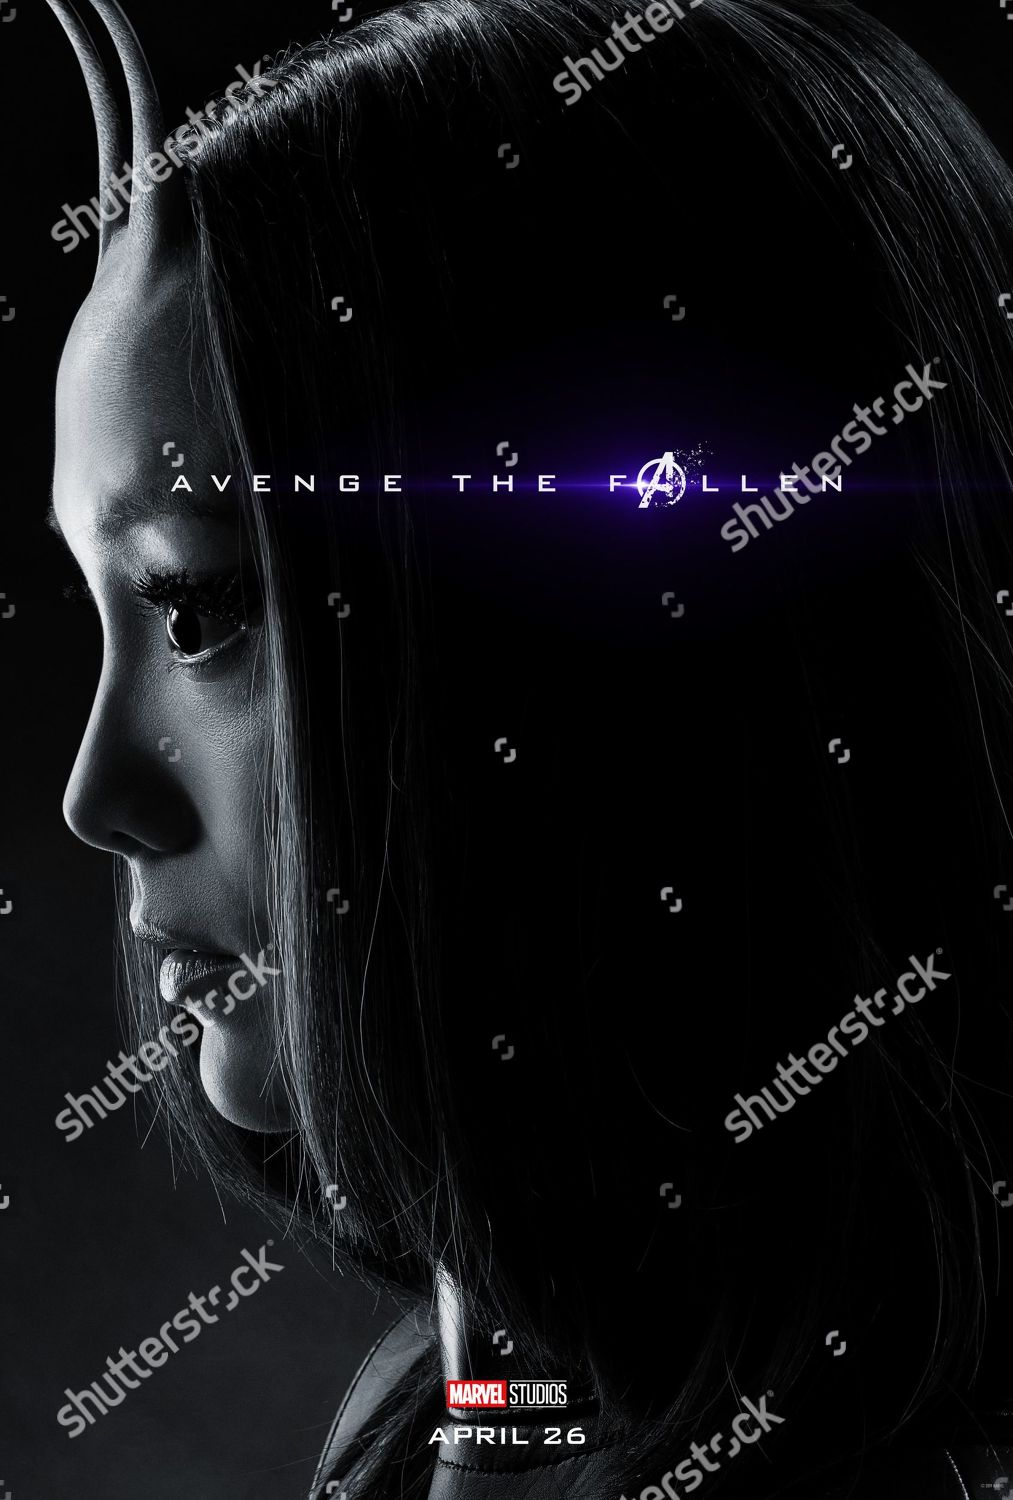 Avengers Endgame Movie Poster 2019 Avengers Endgame 2019 Poster Art Pom Klementieff Photos